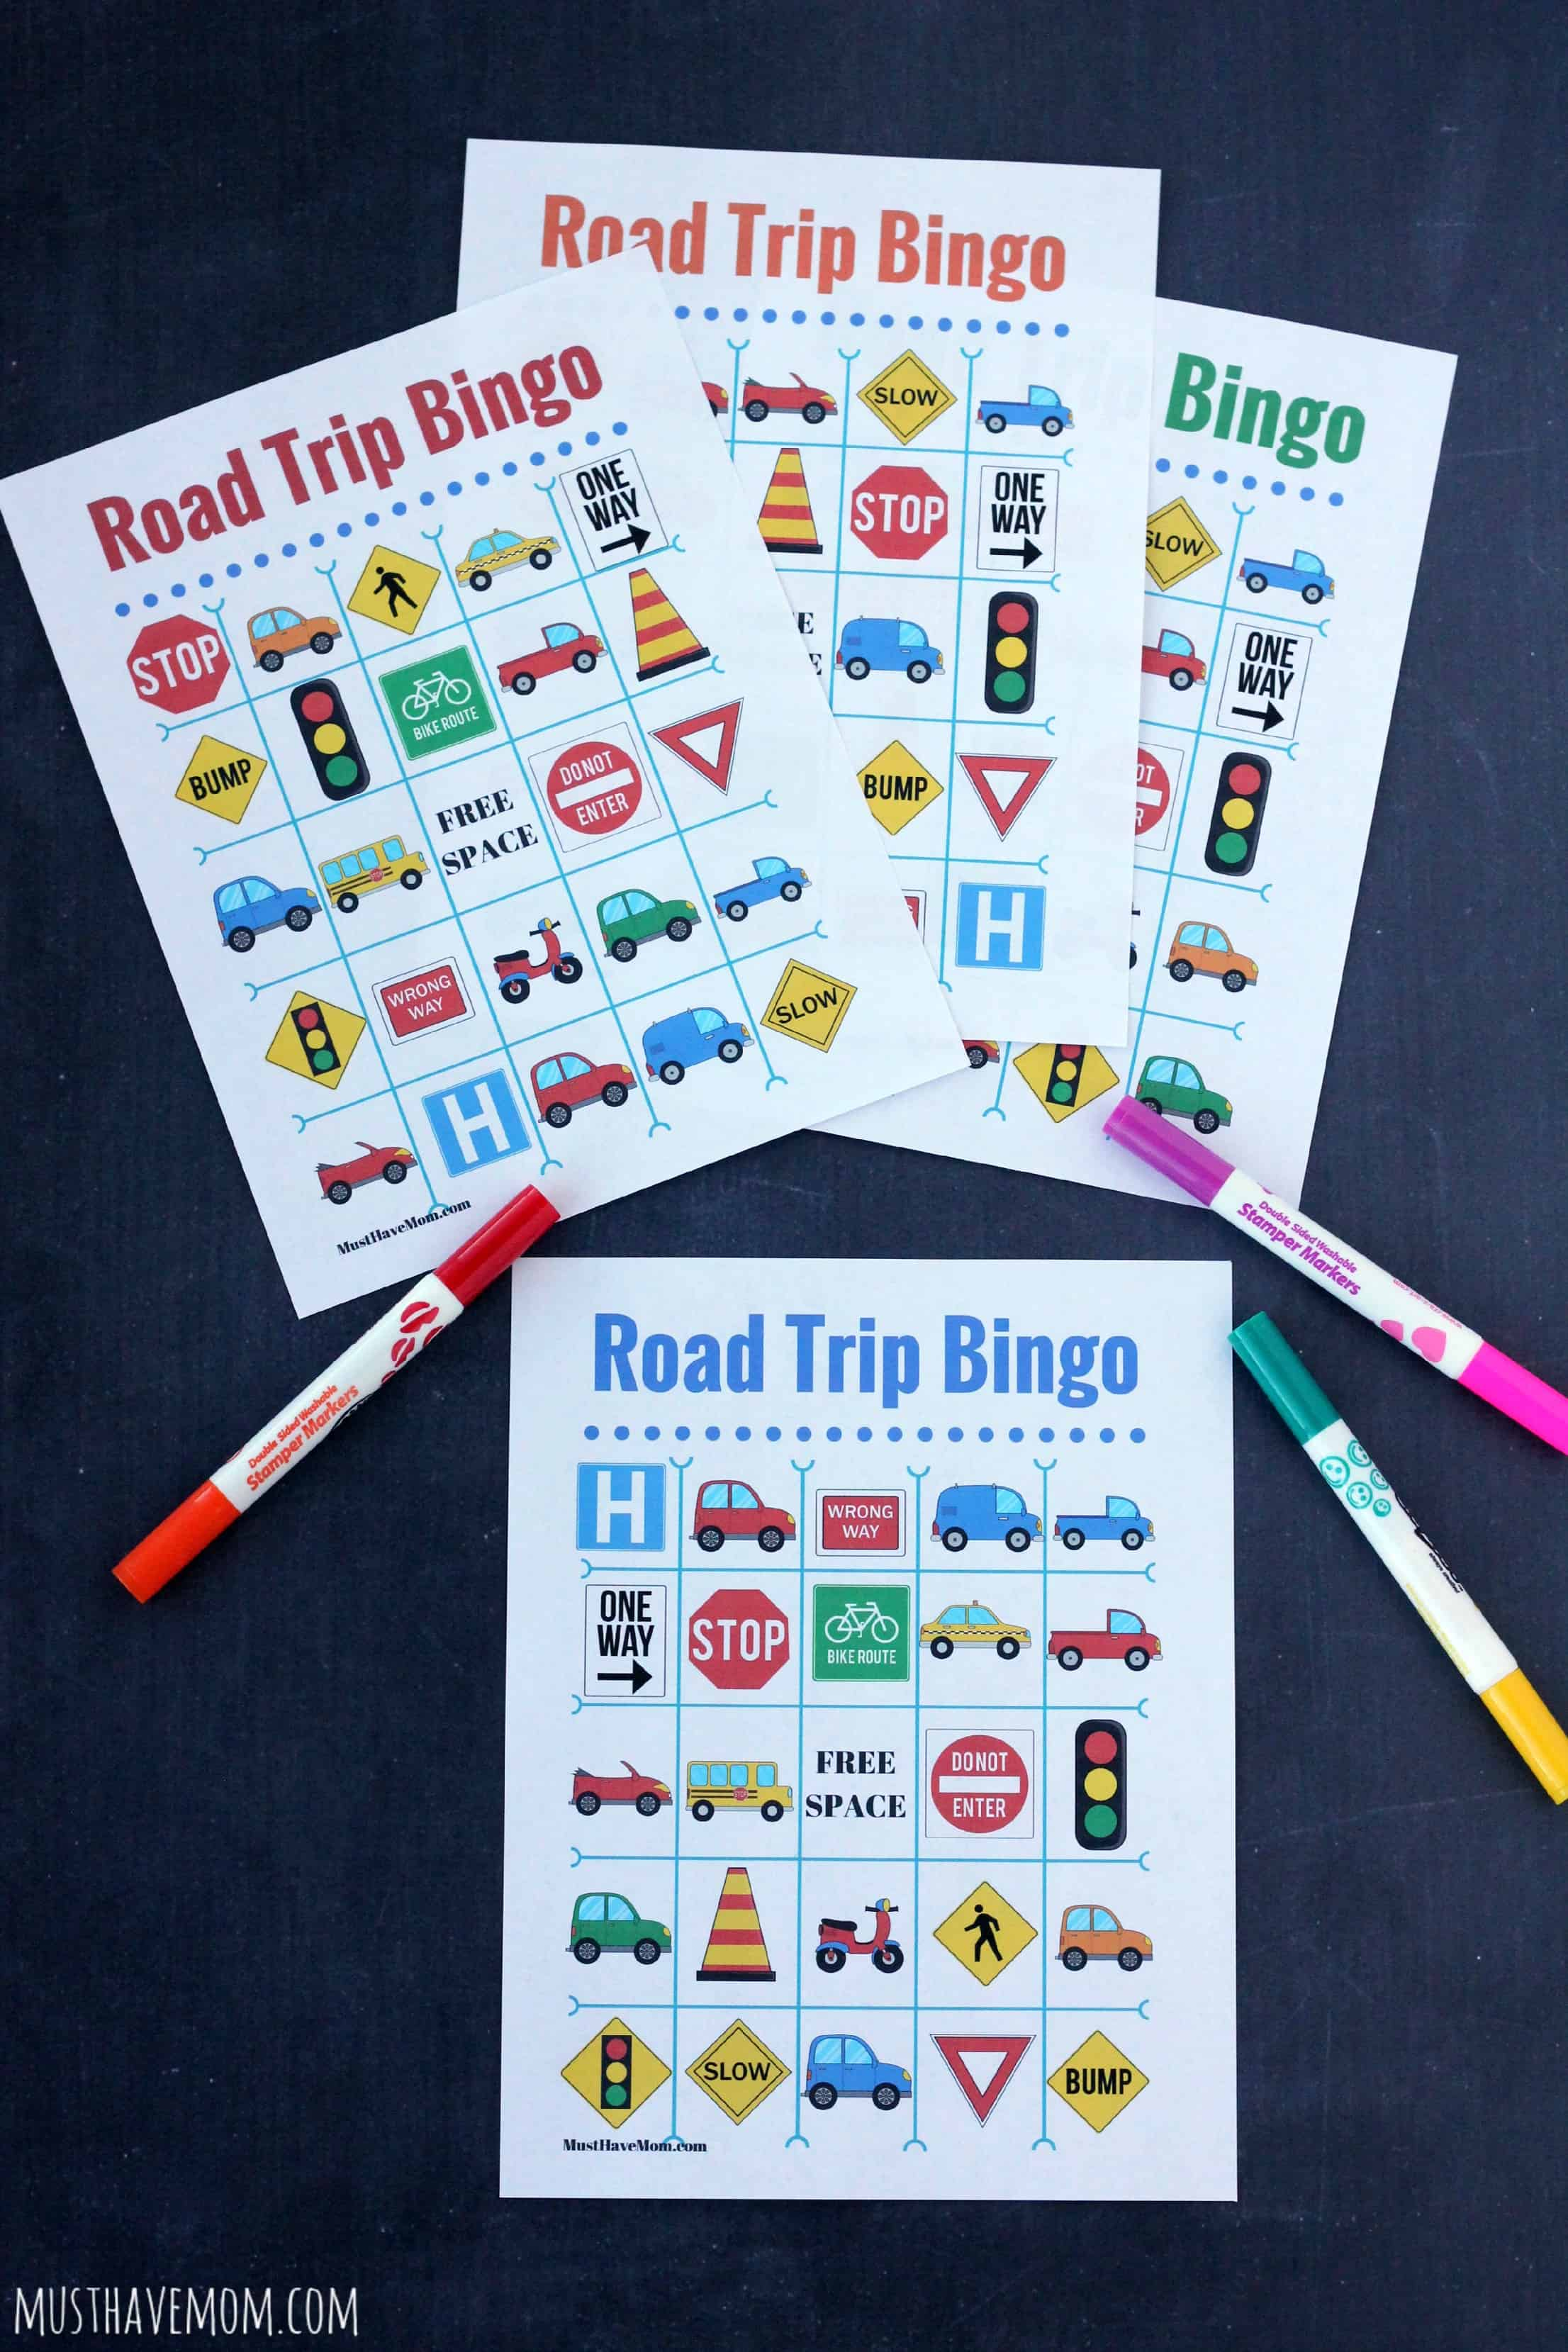 Free Road Trip Bingo Printable Game Boards